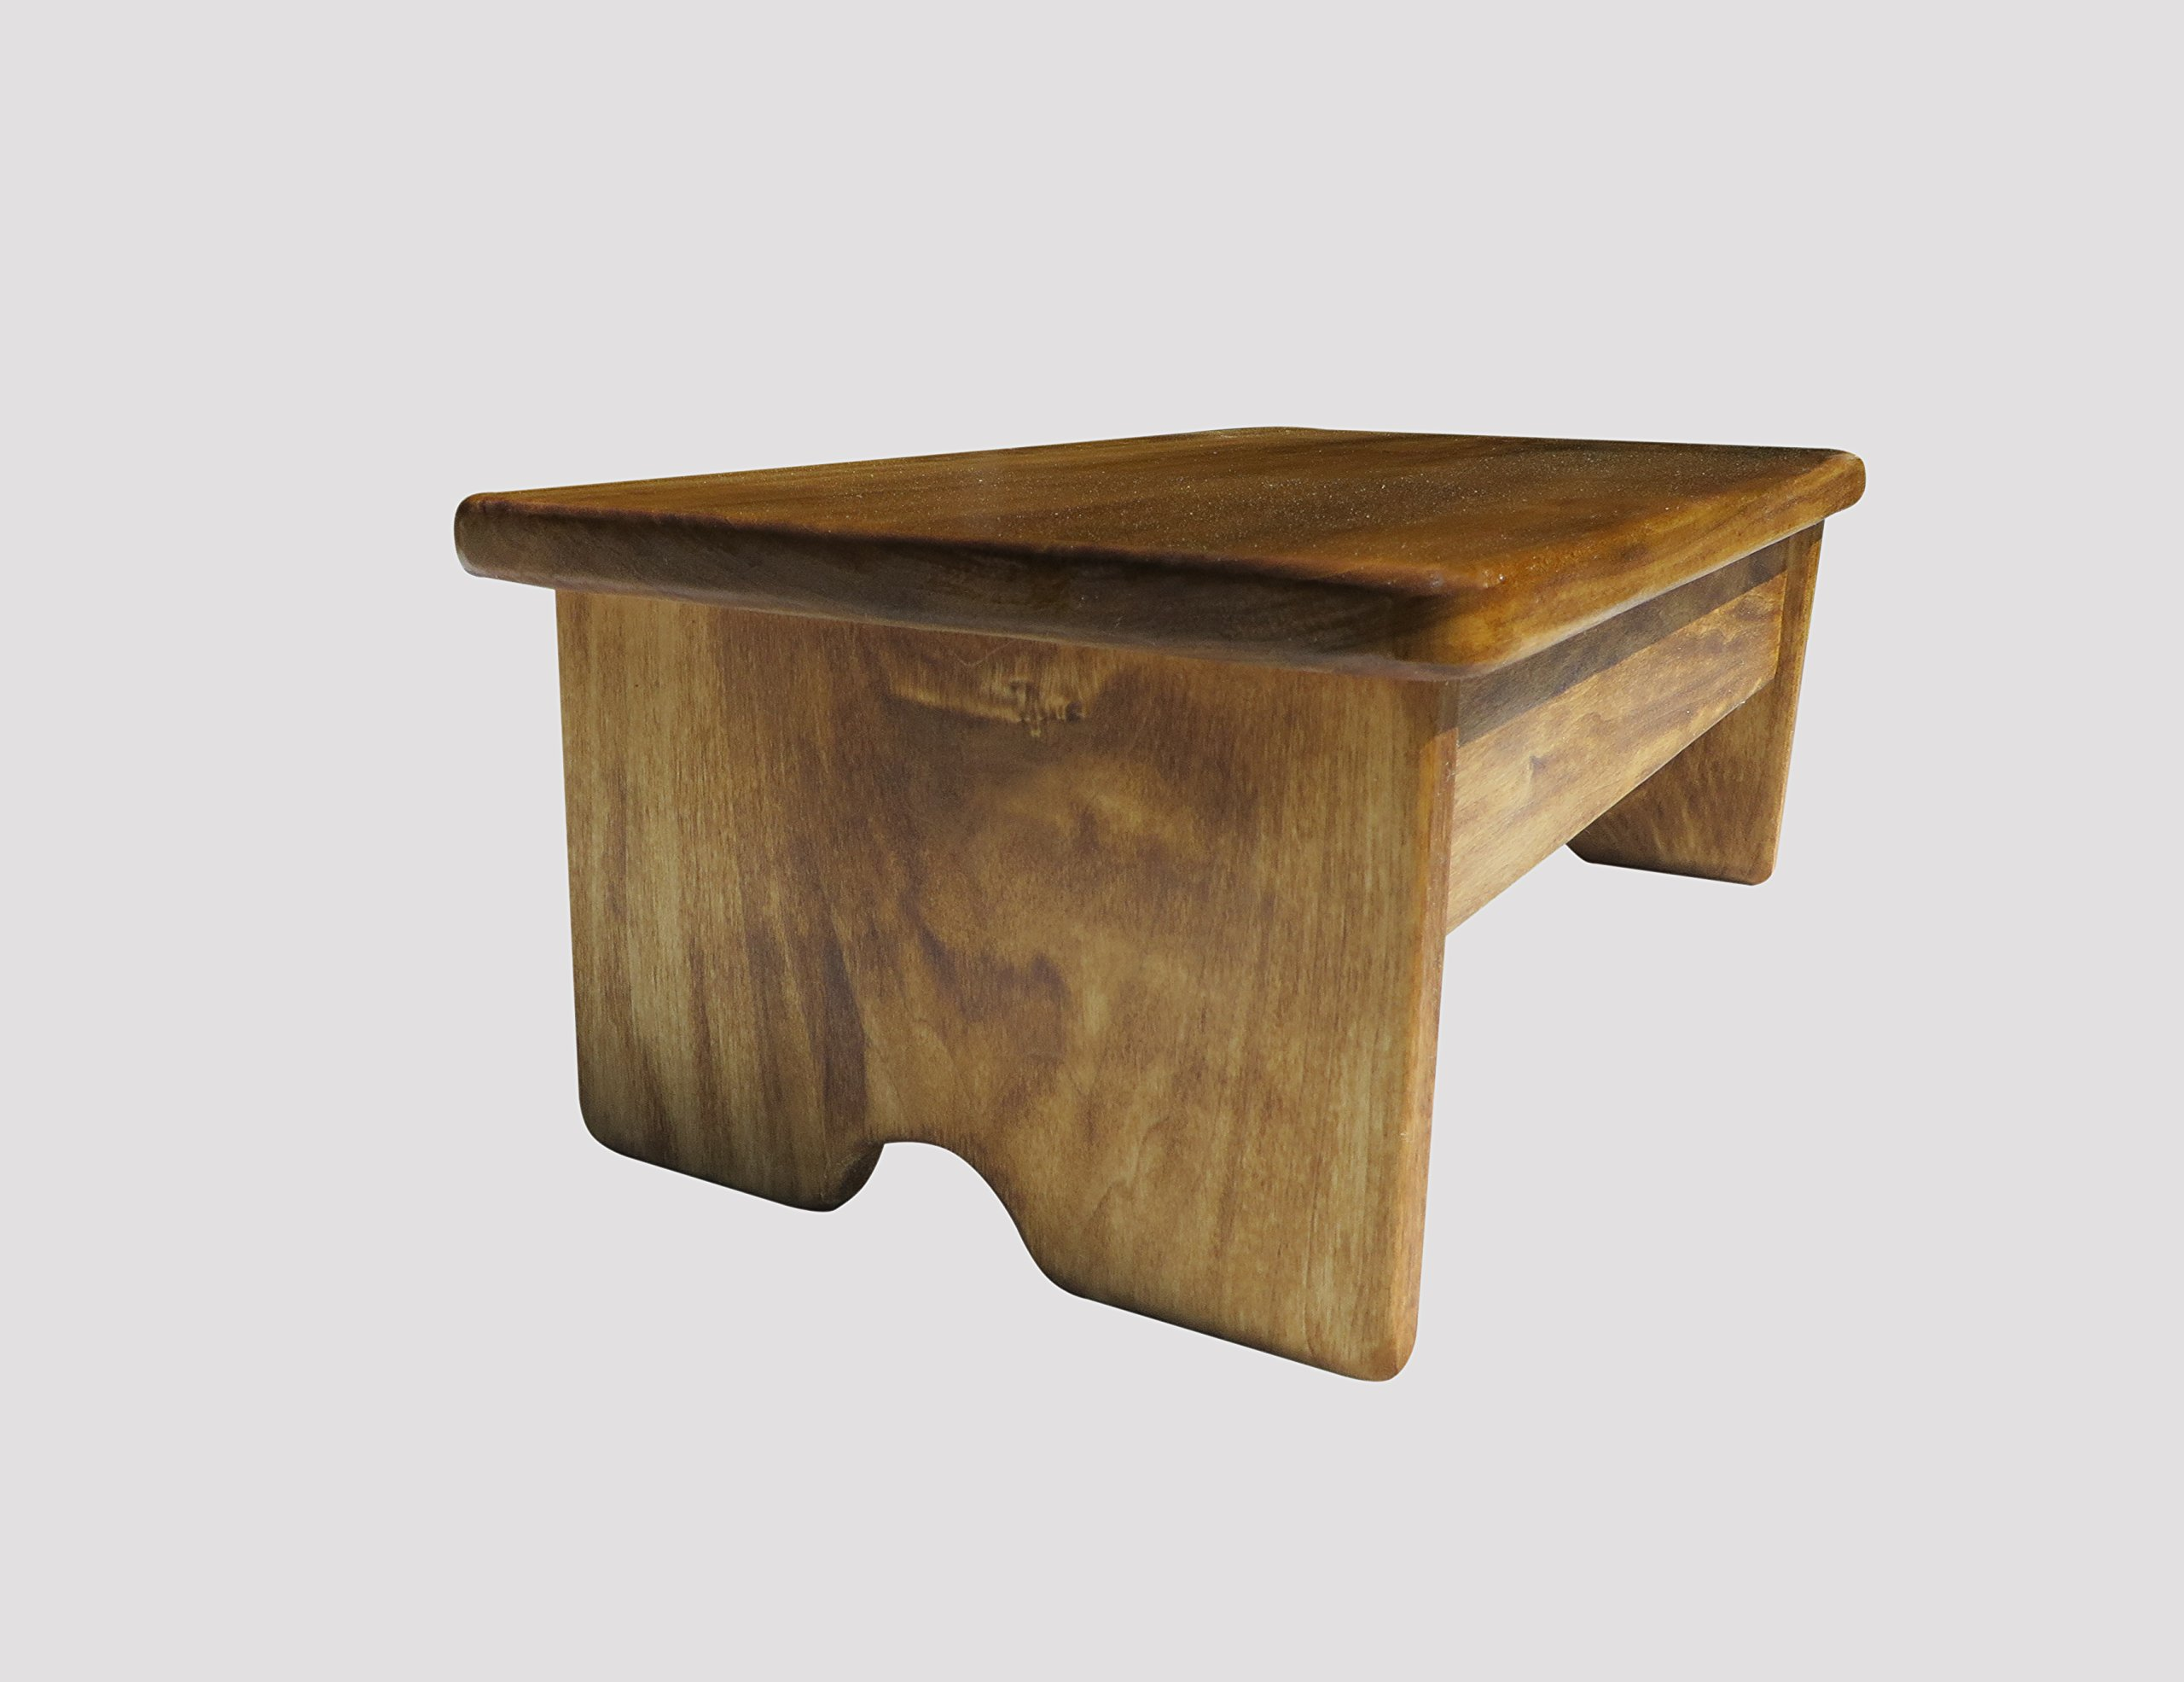 Garage Foot Stool 6'' Tall Poplar Wood (Made in the USA) (Maple Stain)